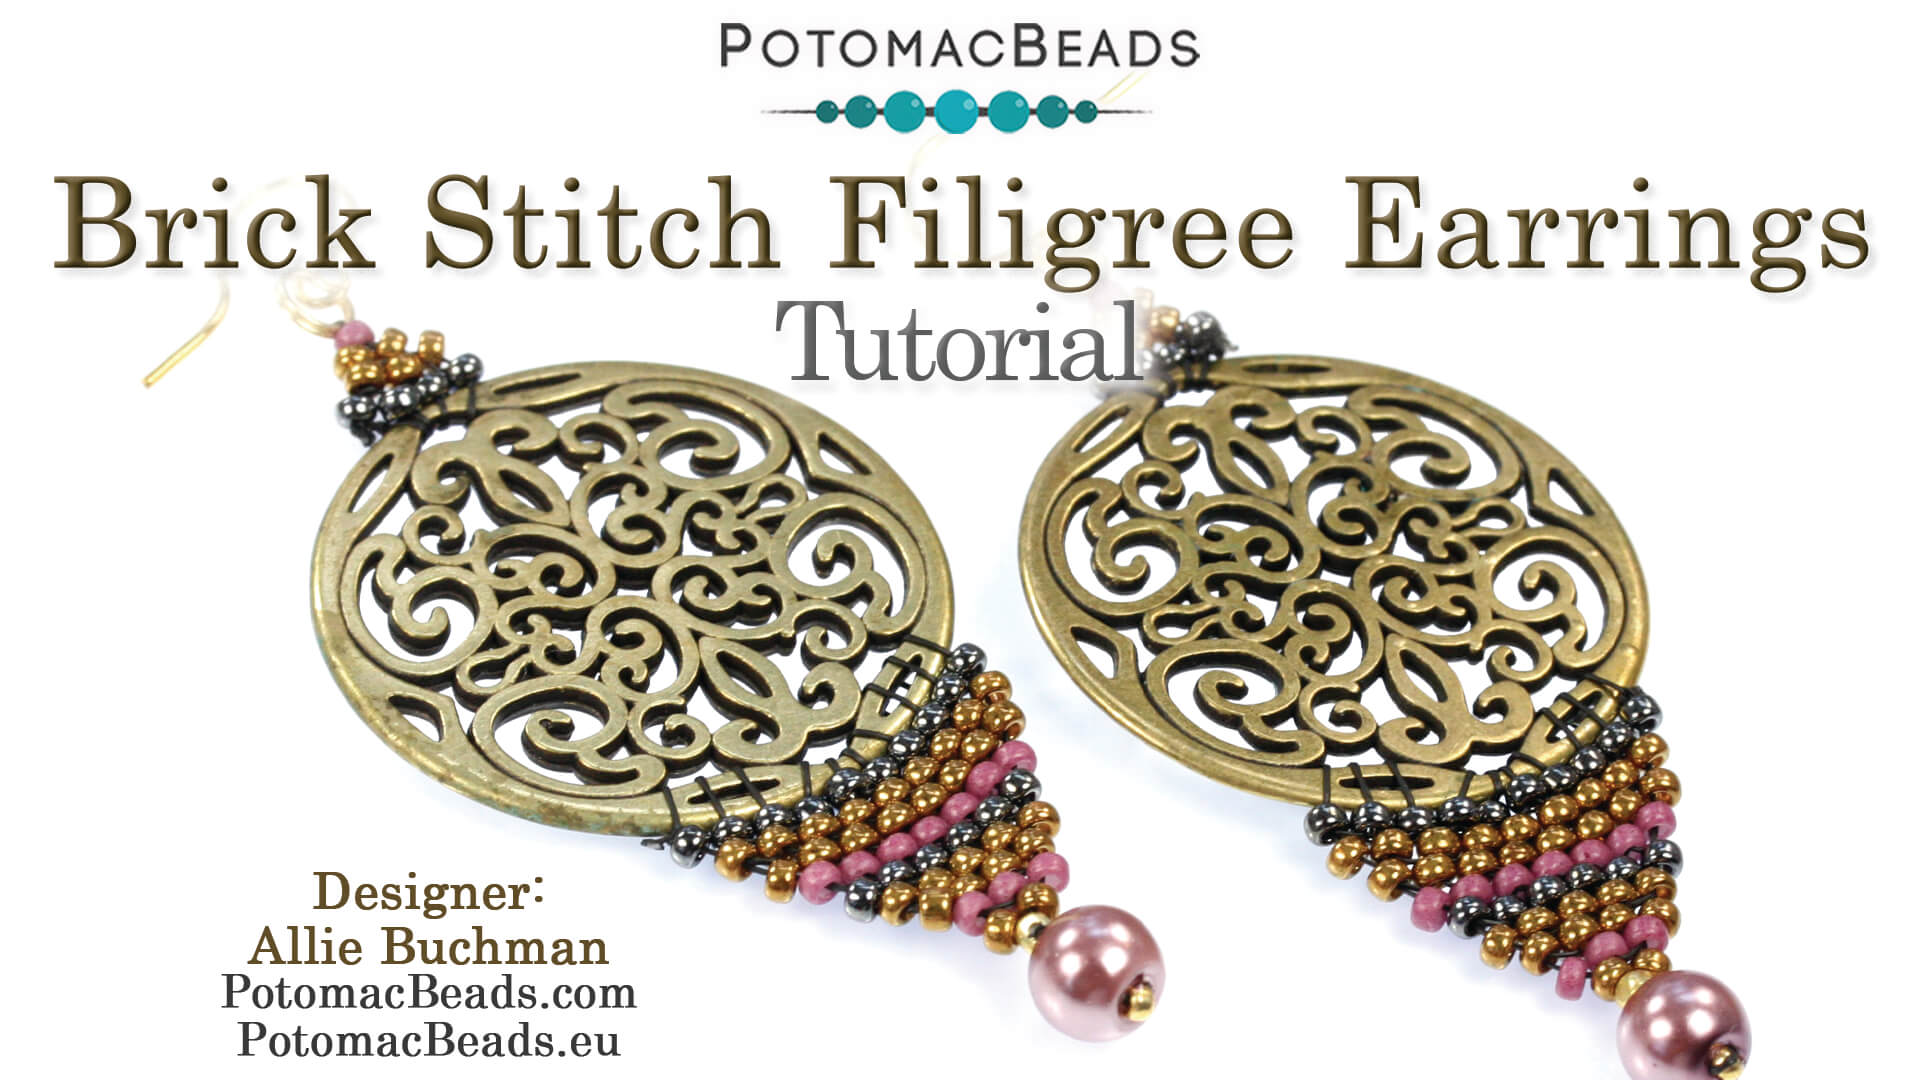 How to Bead / Videos Sorted by Beads / All Other Bead Videos / Brick Stitch Filigree Earrings Tutorial